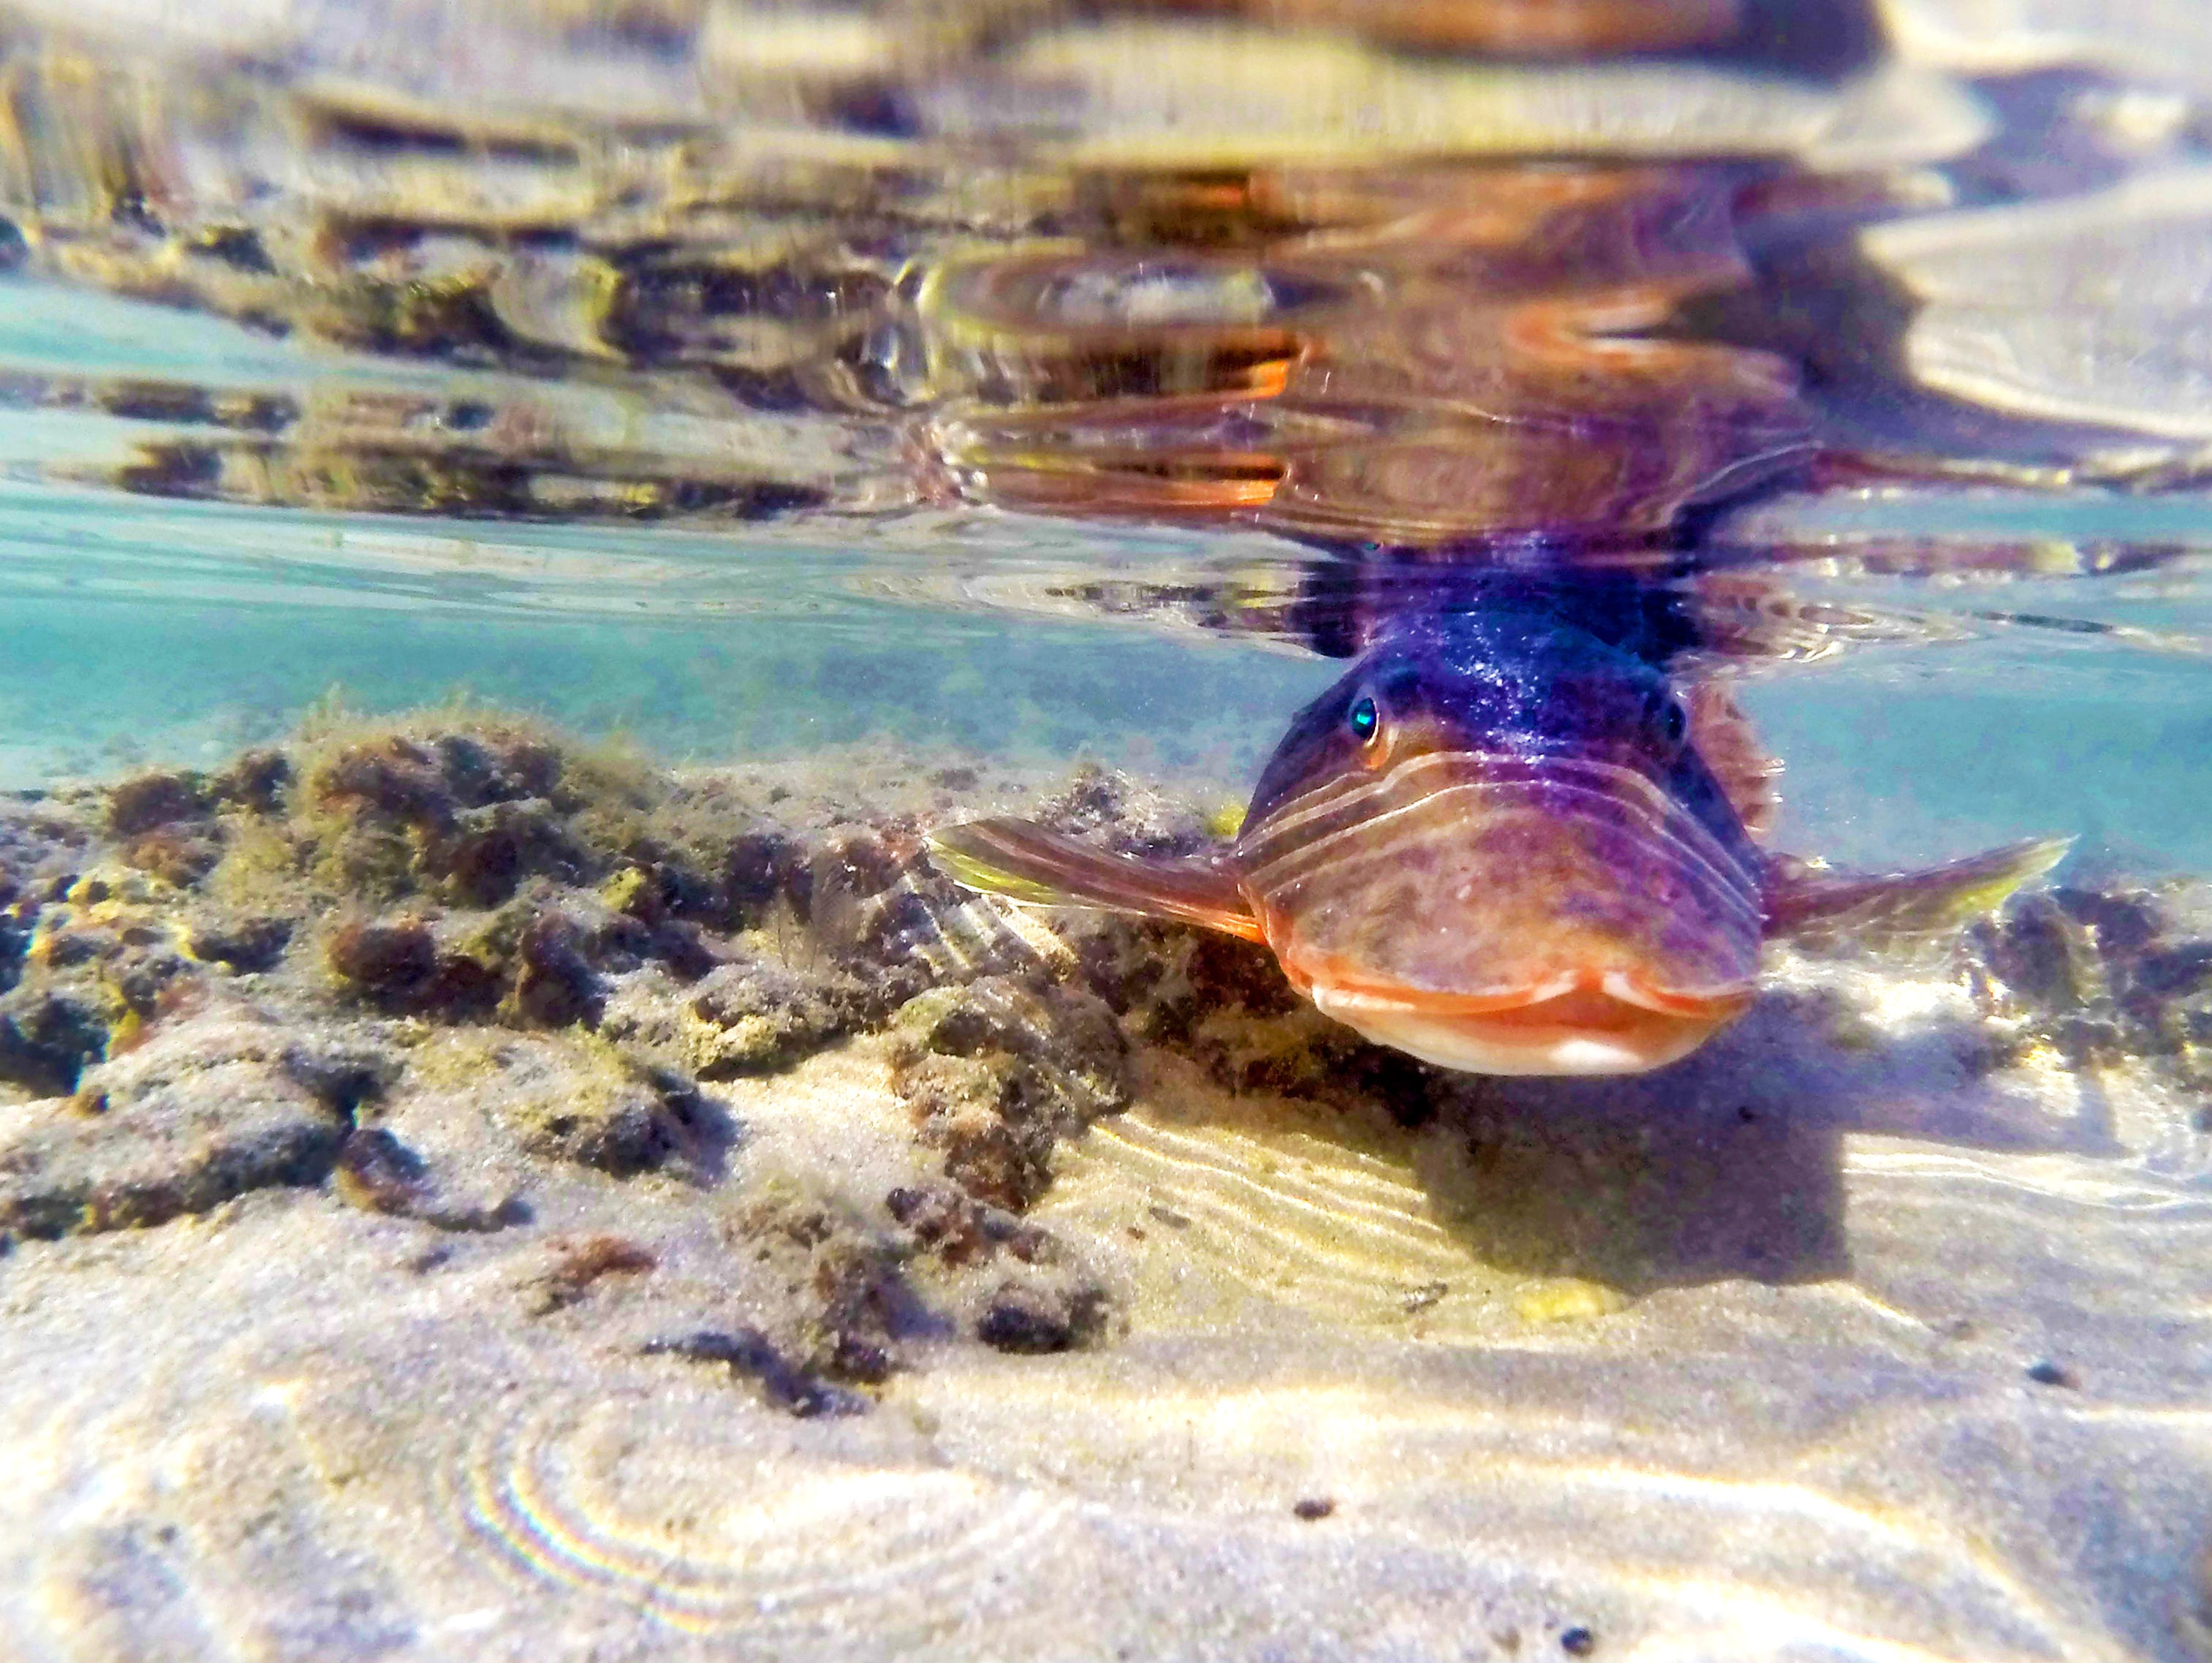 A fish floats in low tide at Sandy Beach in Puerto Penasco, Mexico.